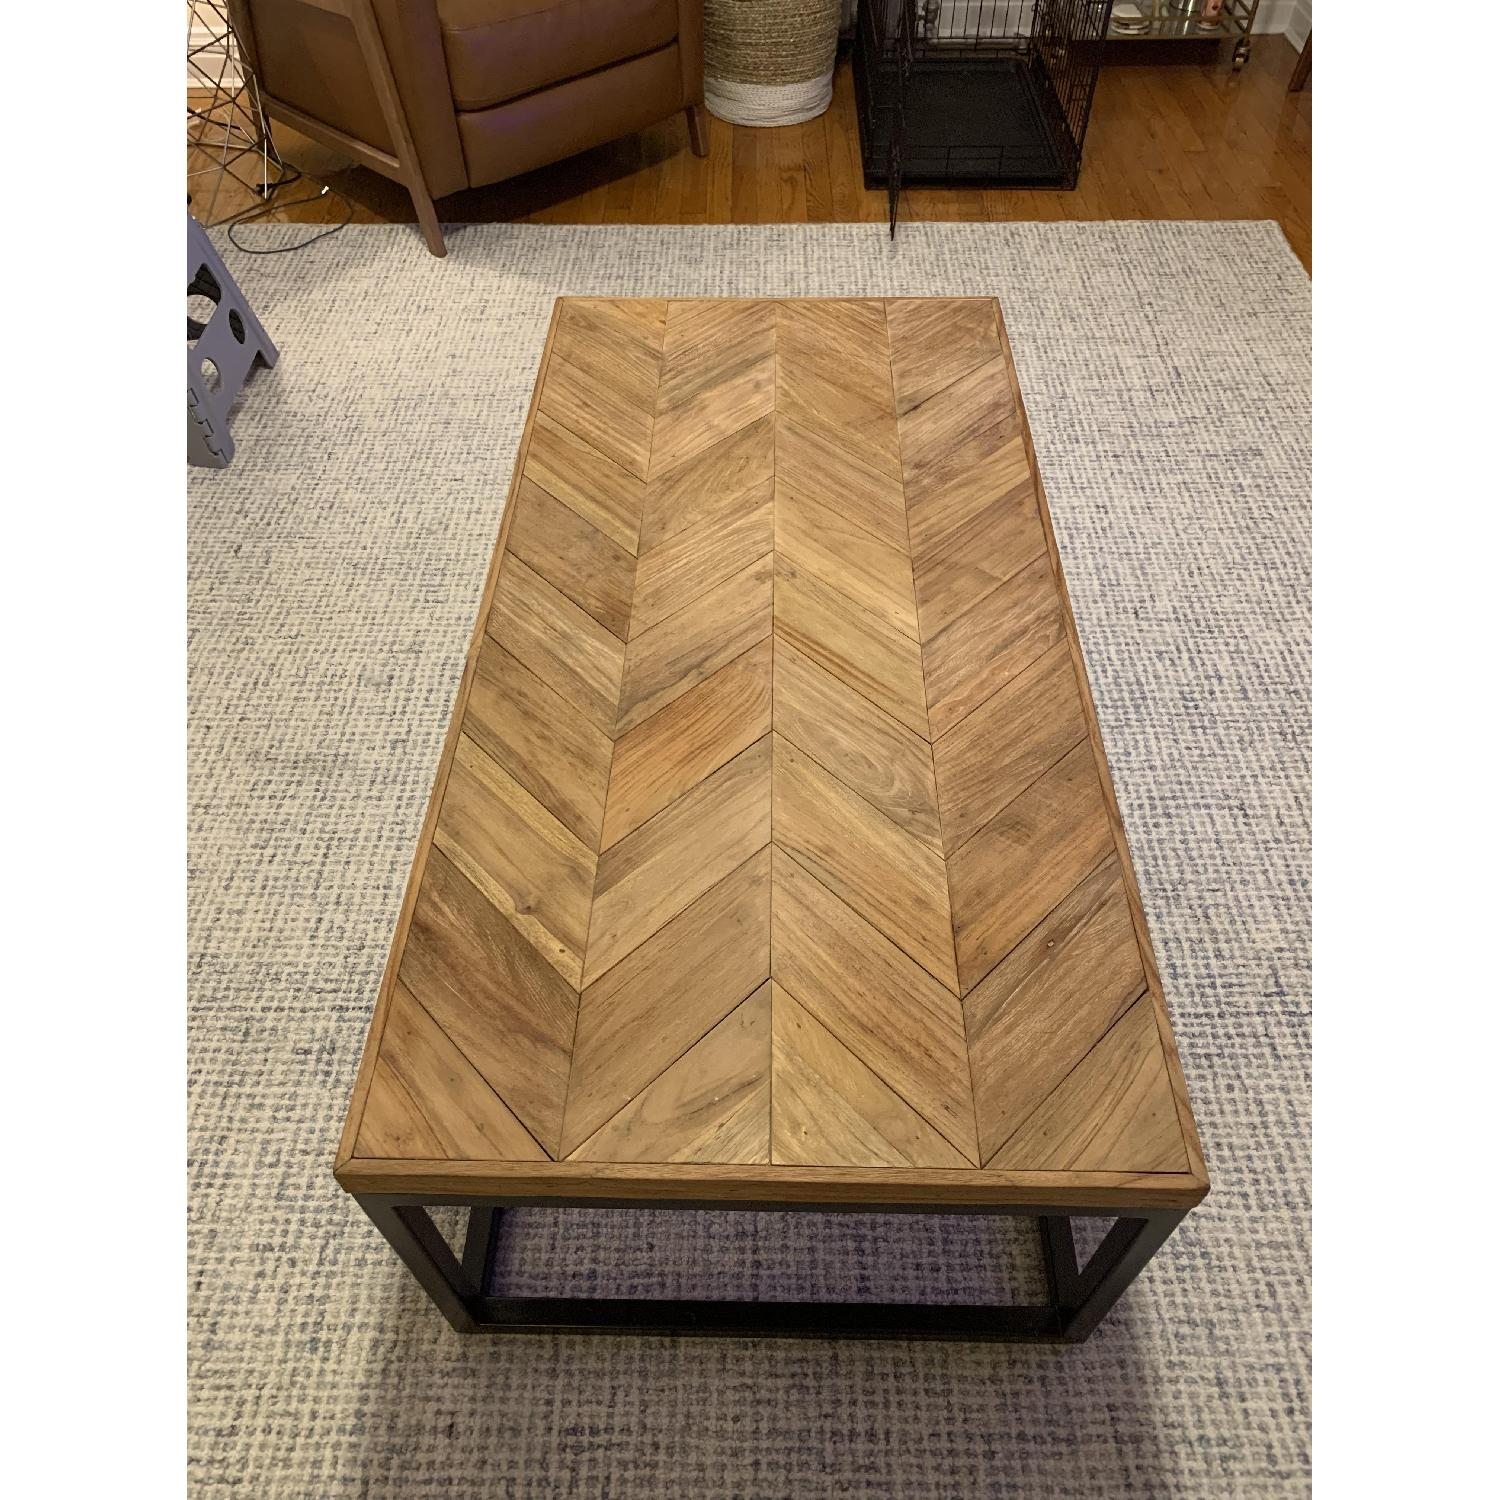 Crate & Barrel Dixon Coffee Table - image-3